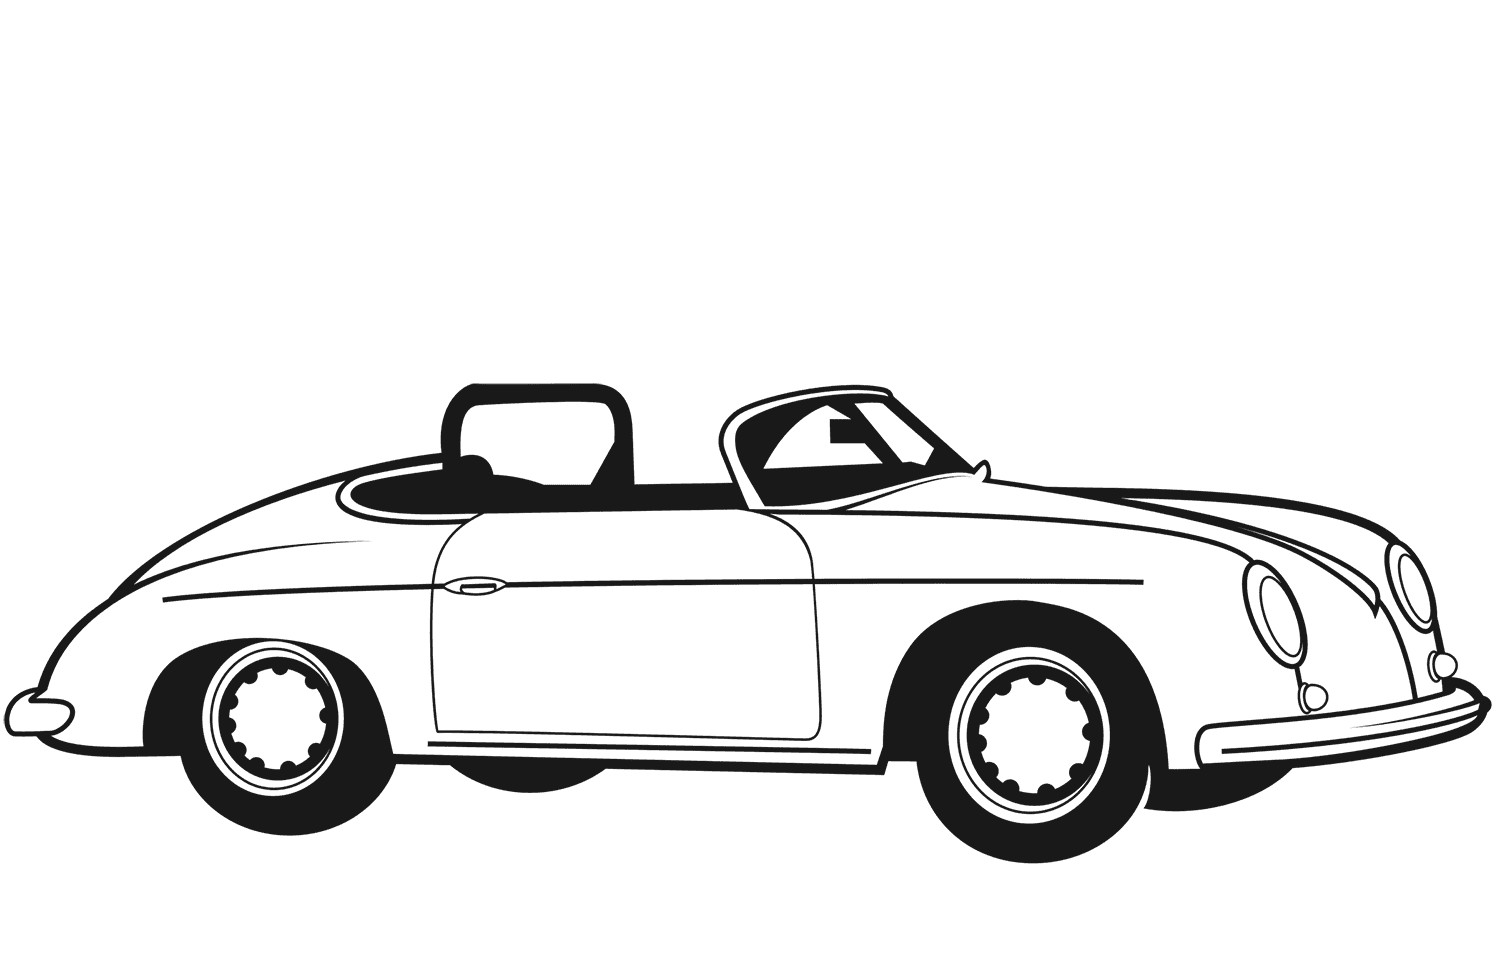 Classic Convertible Car coloring page